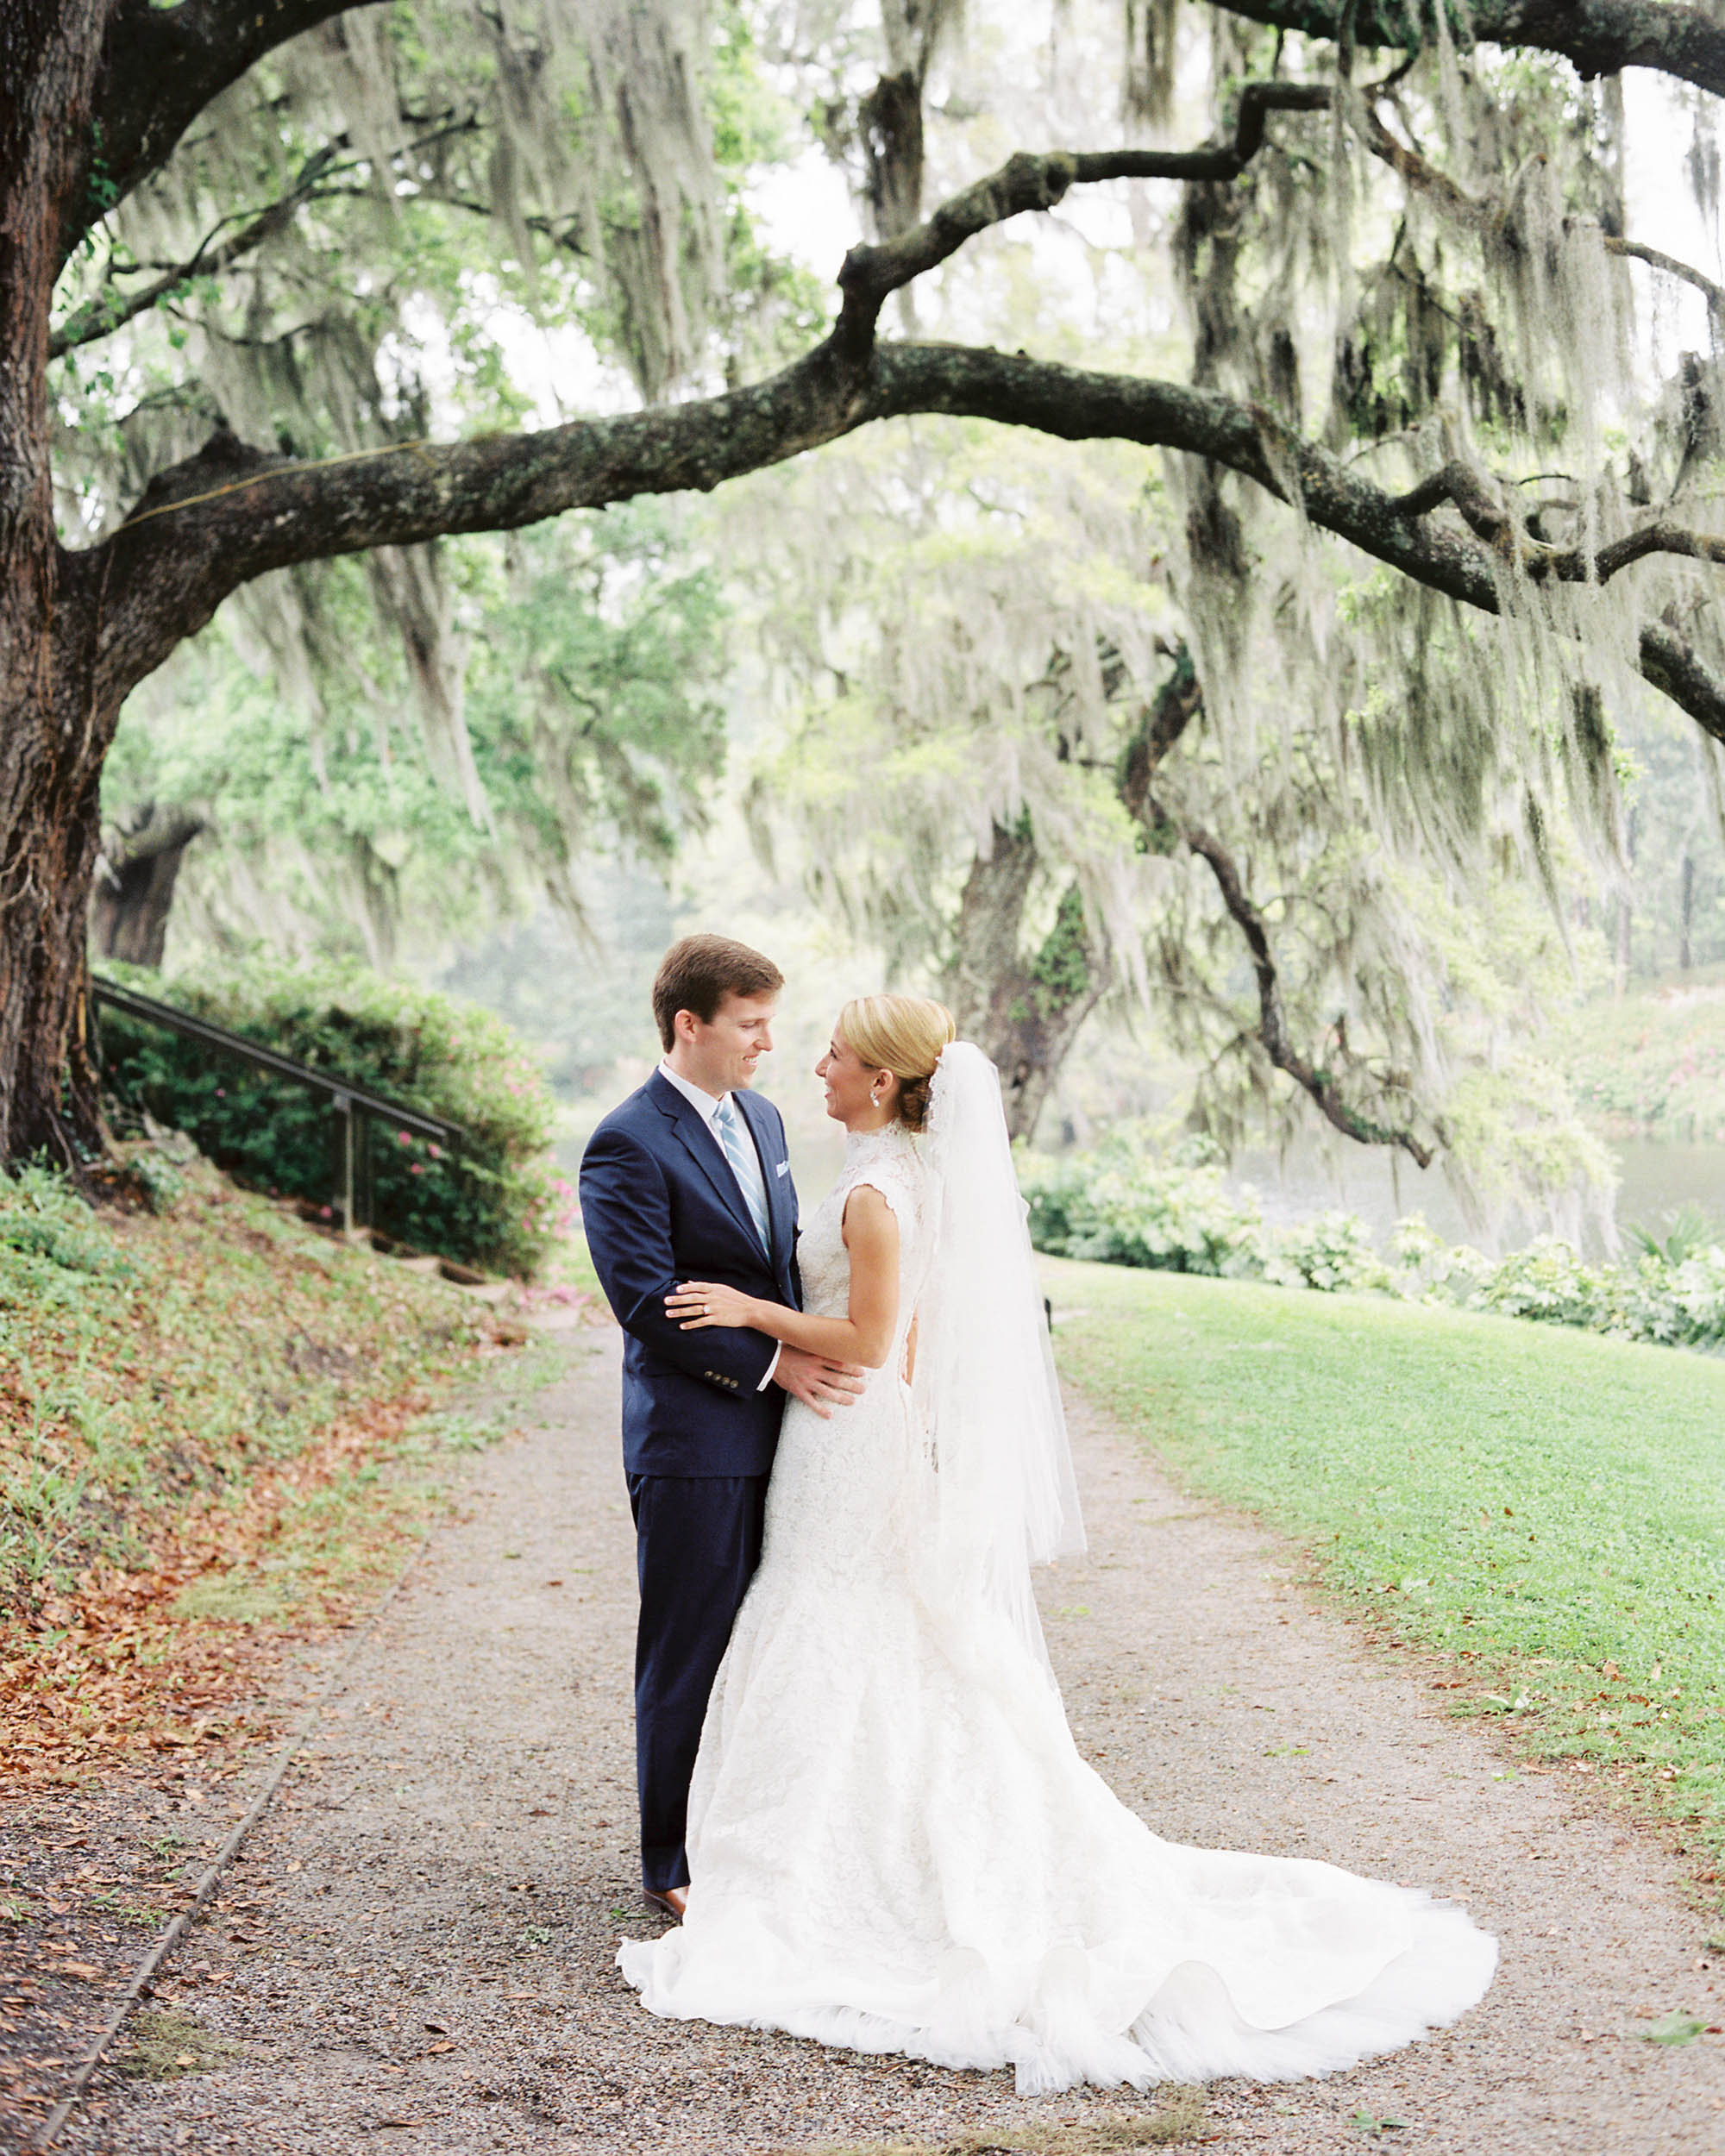 Middleton Place Charleston Wedding Photographer 37 - Middleton Place